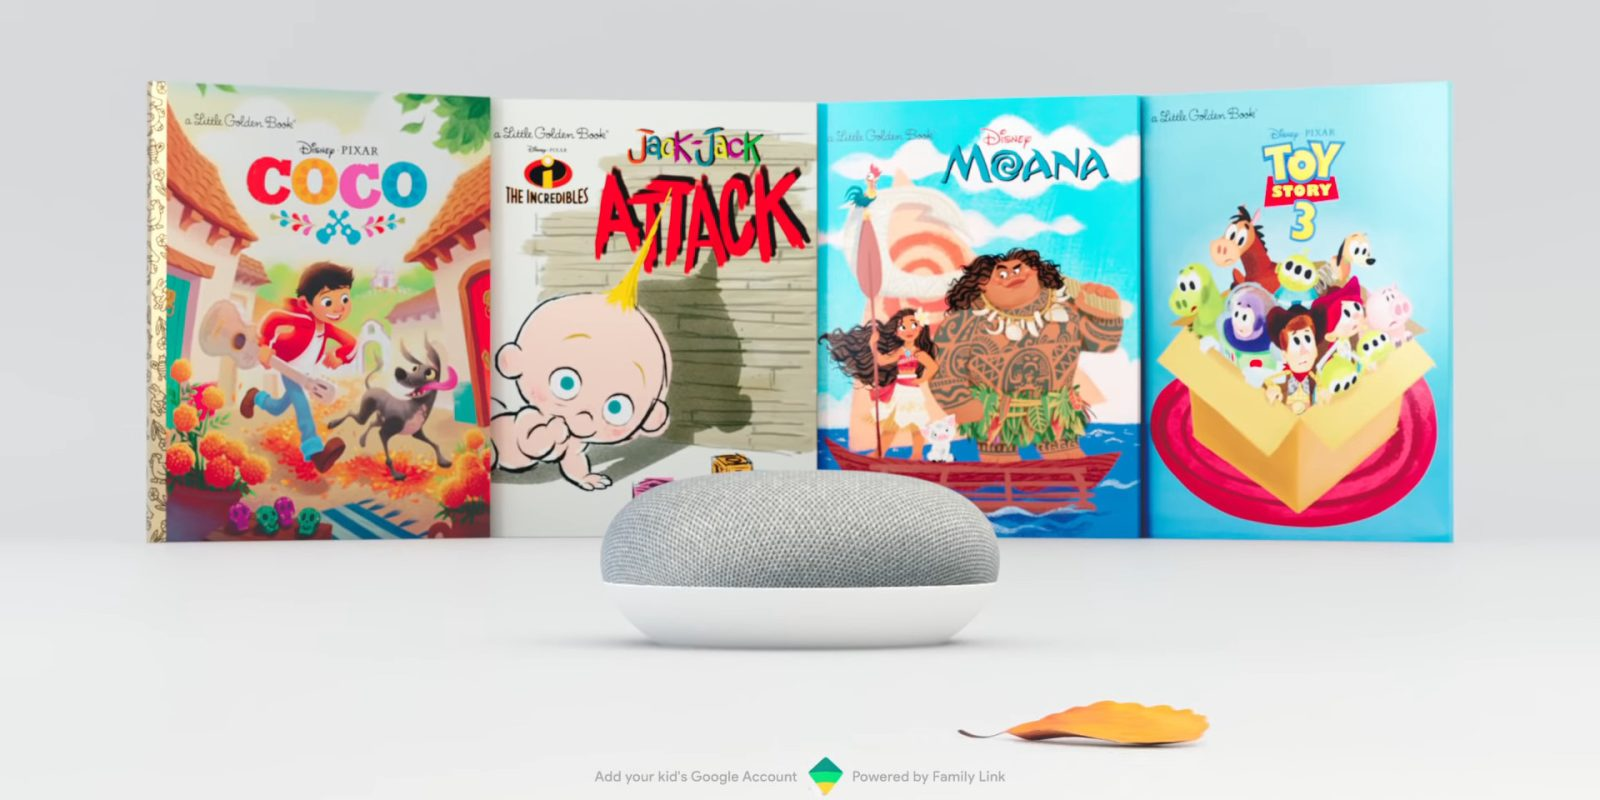 Google Home to make story time 'magical' with music and sounds for